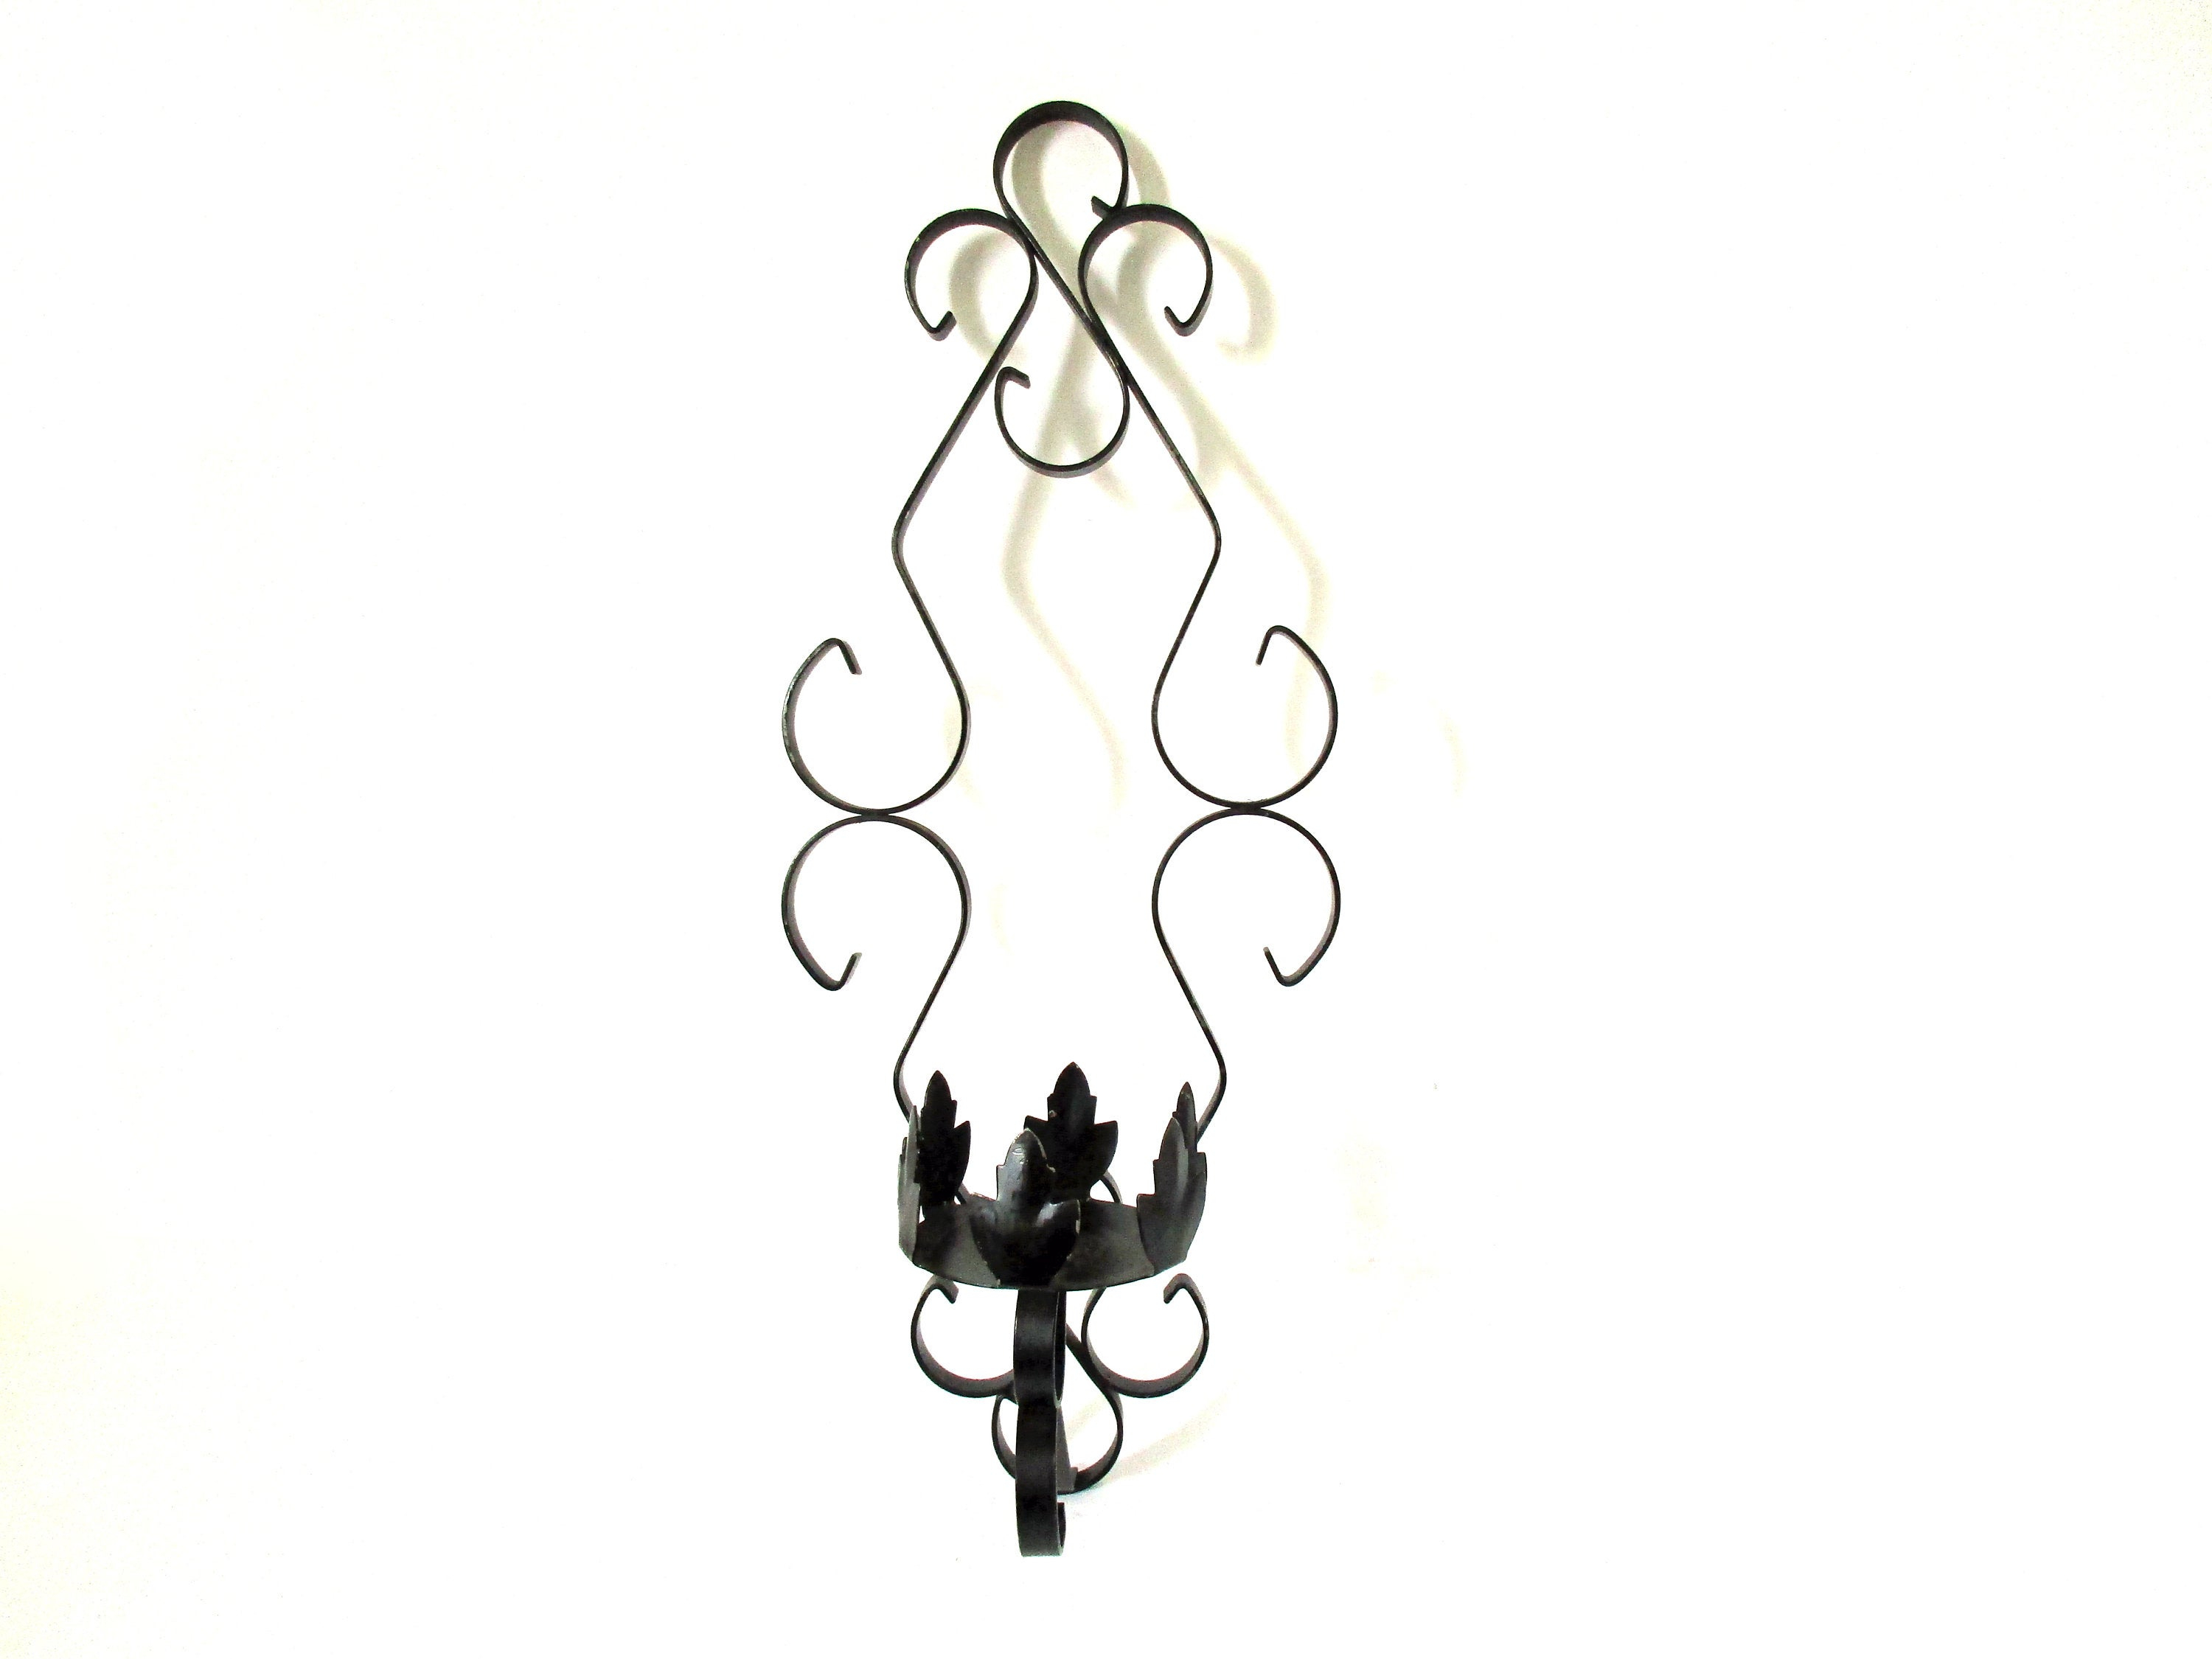 Black Curly Metal Candle Sconce, Spanish Revival Wall Decor, Curly Wrought Iron Decor, Castle Decor, Spanish Mediterranean Bungalow Hacienda Intended For Spanish Ornamental Wall Decor (View 1 of 30)